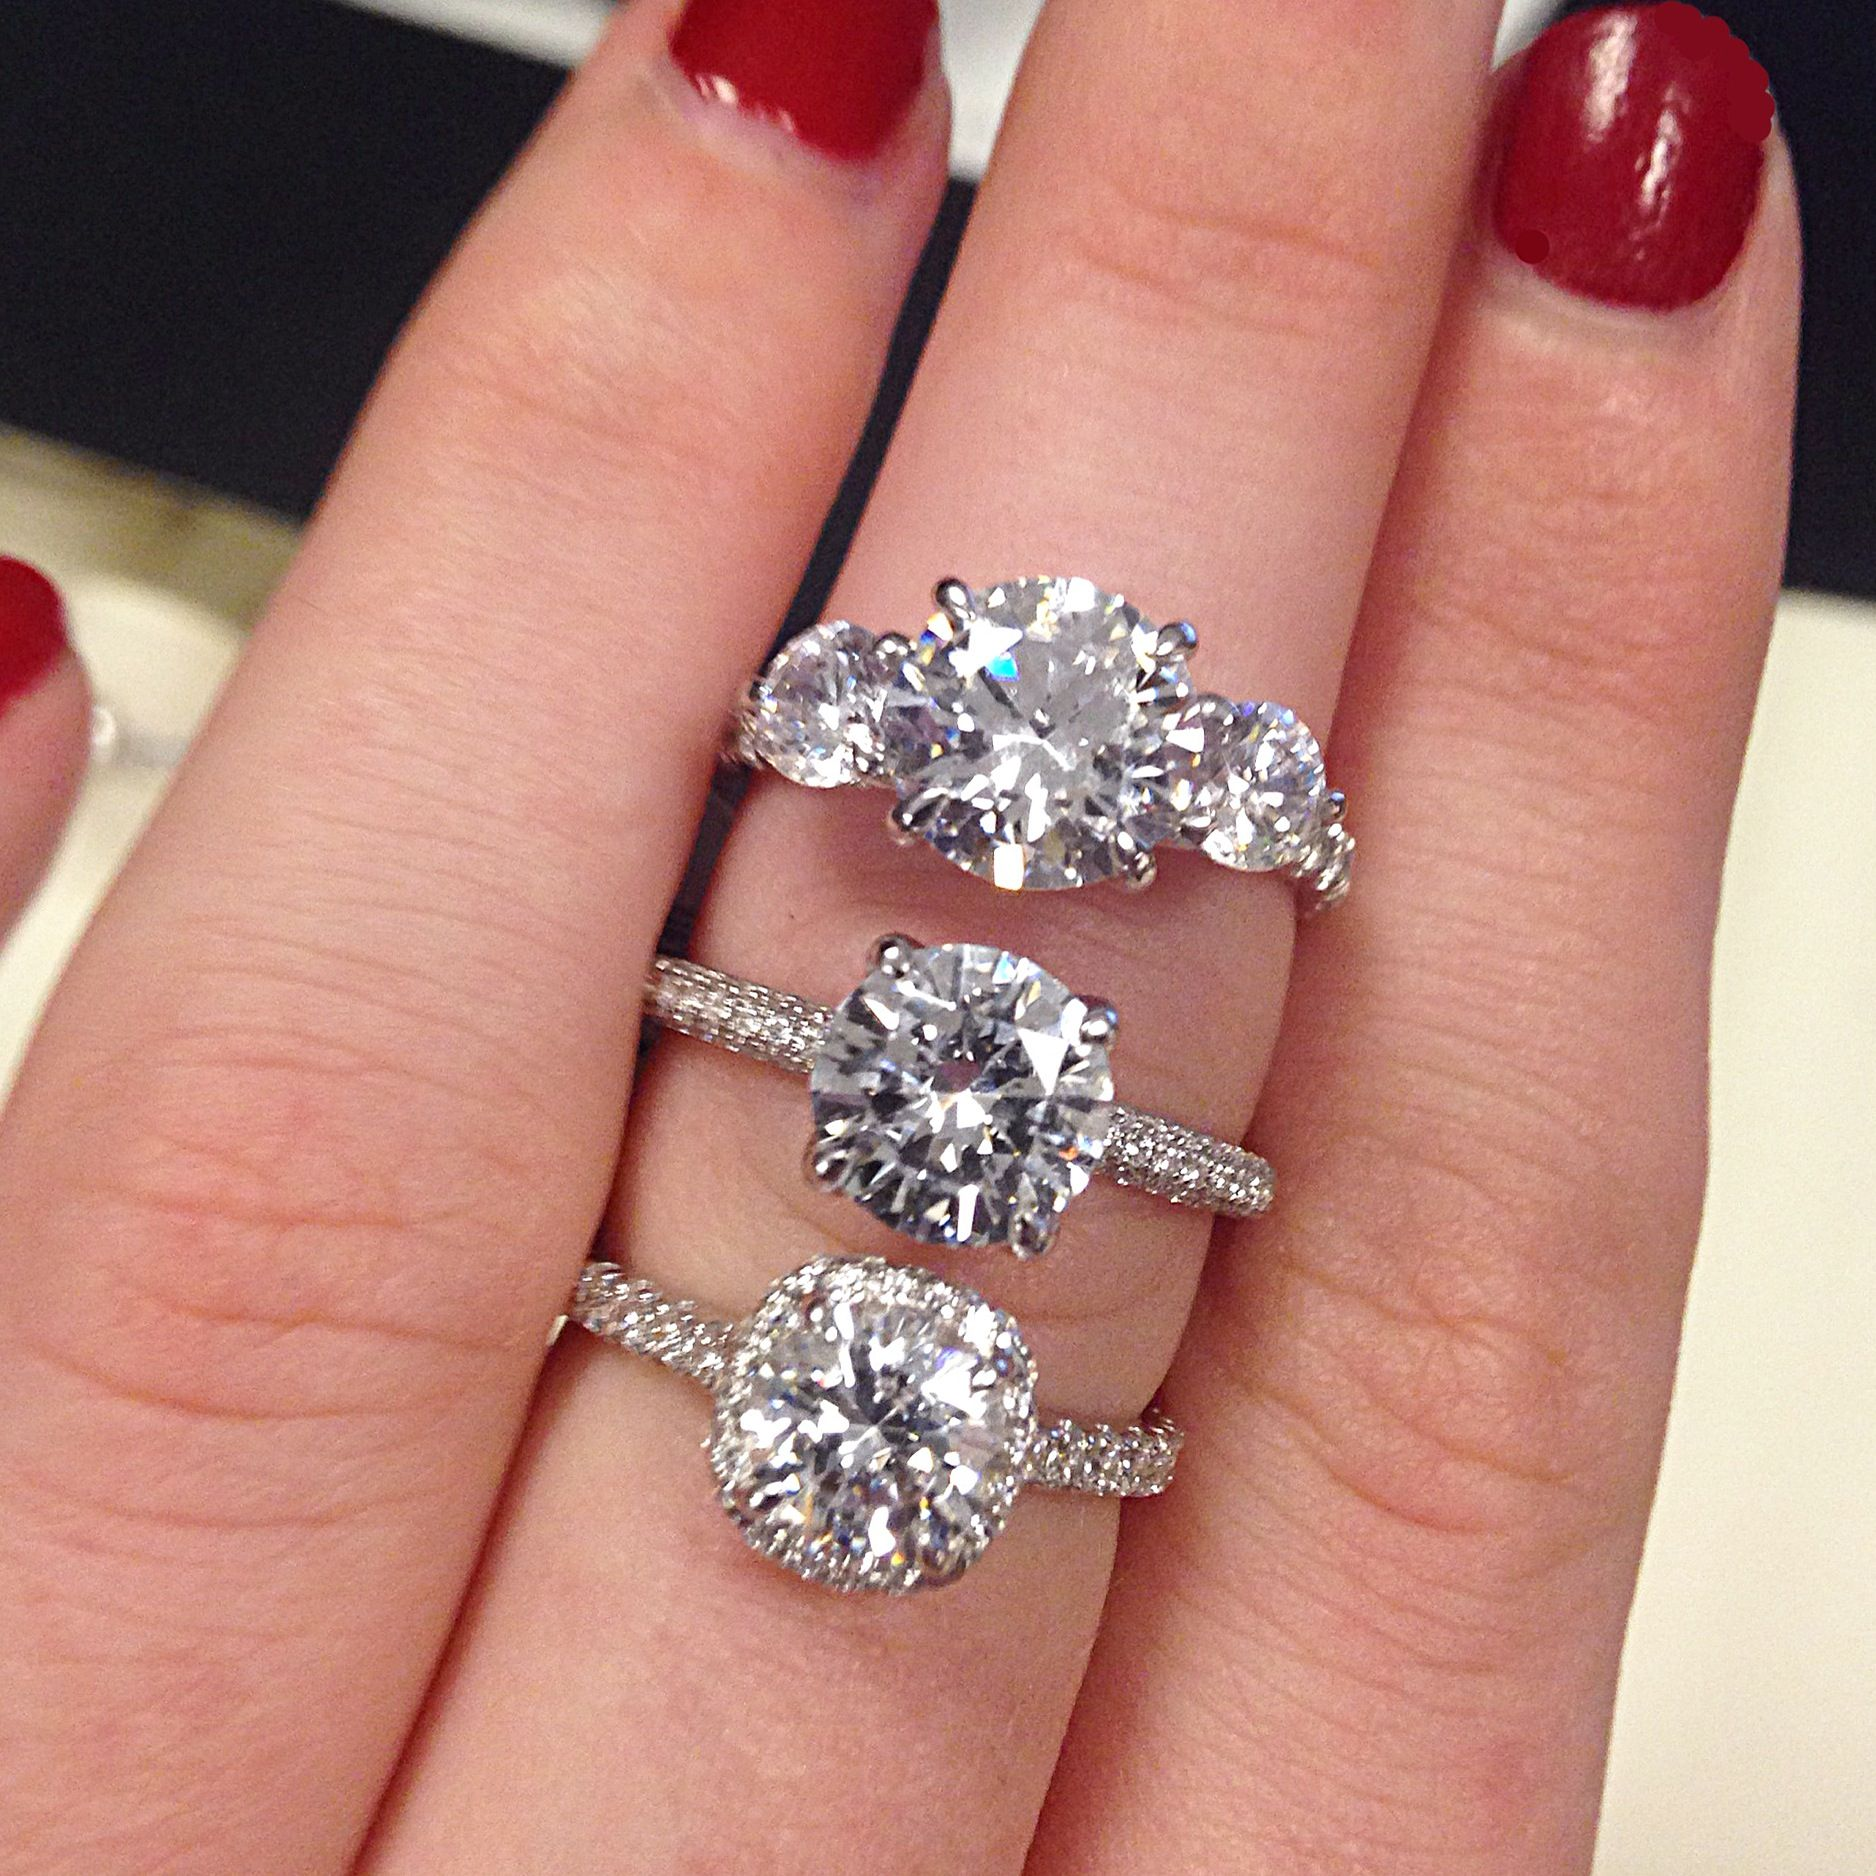 Weddings · What's Your Dream Ring?